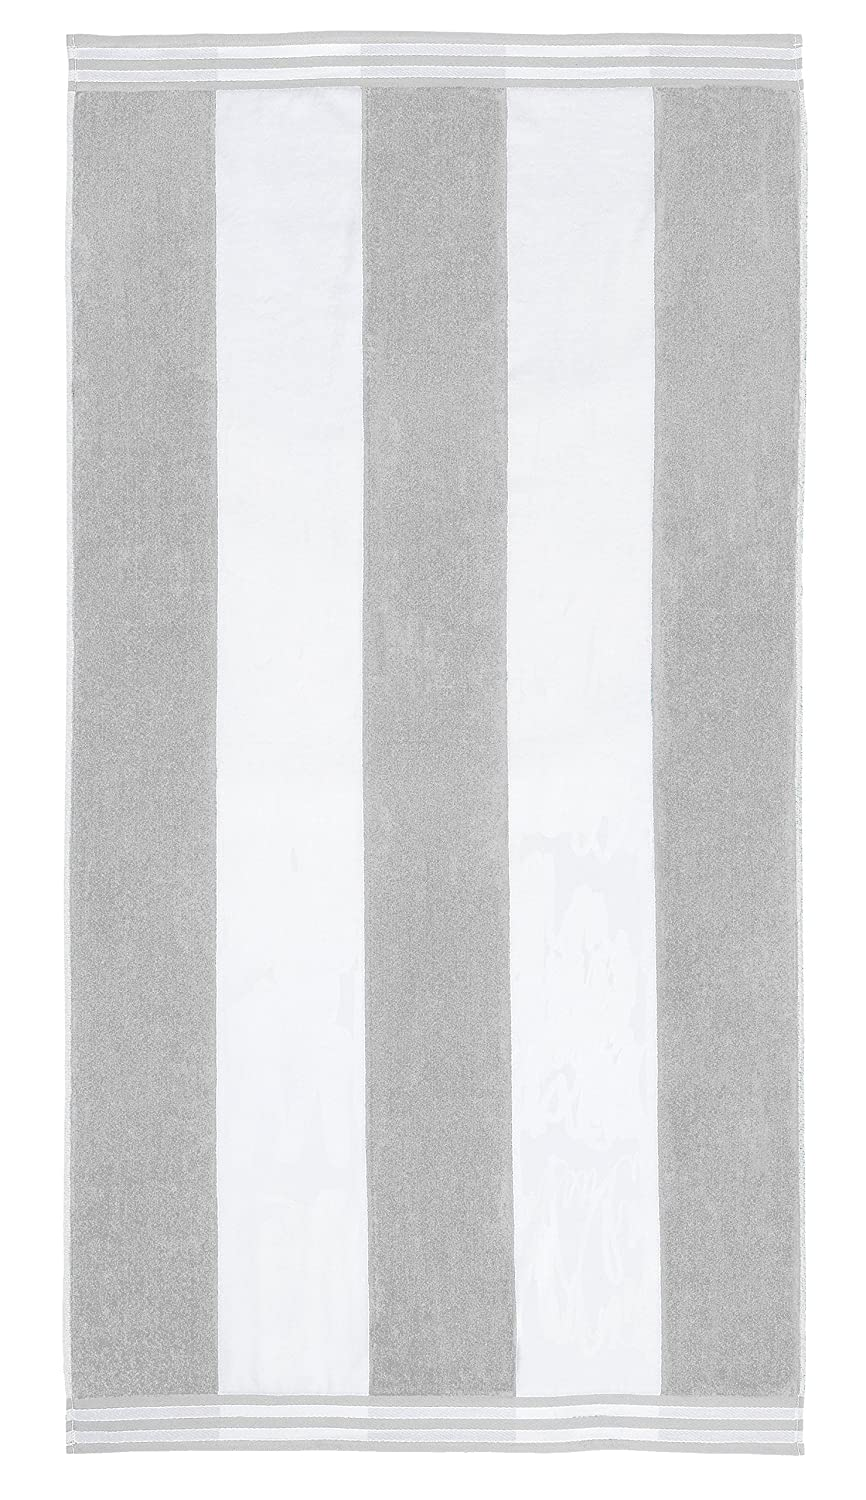 Superior Luxurious 100 Cotton Beach Towels Oversized 34 X 64 Soft Velour Cotton And Absorbent Cotton Terry Thick And Plush Striped Beach Towels